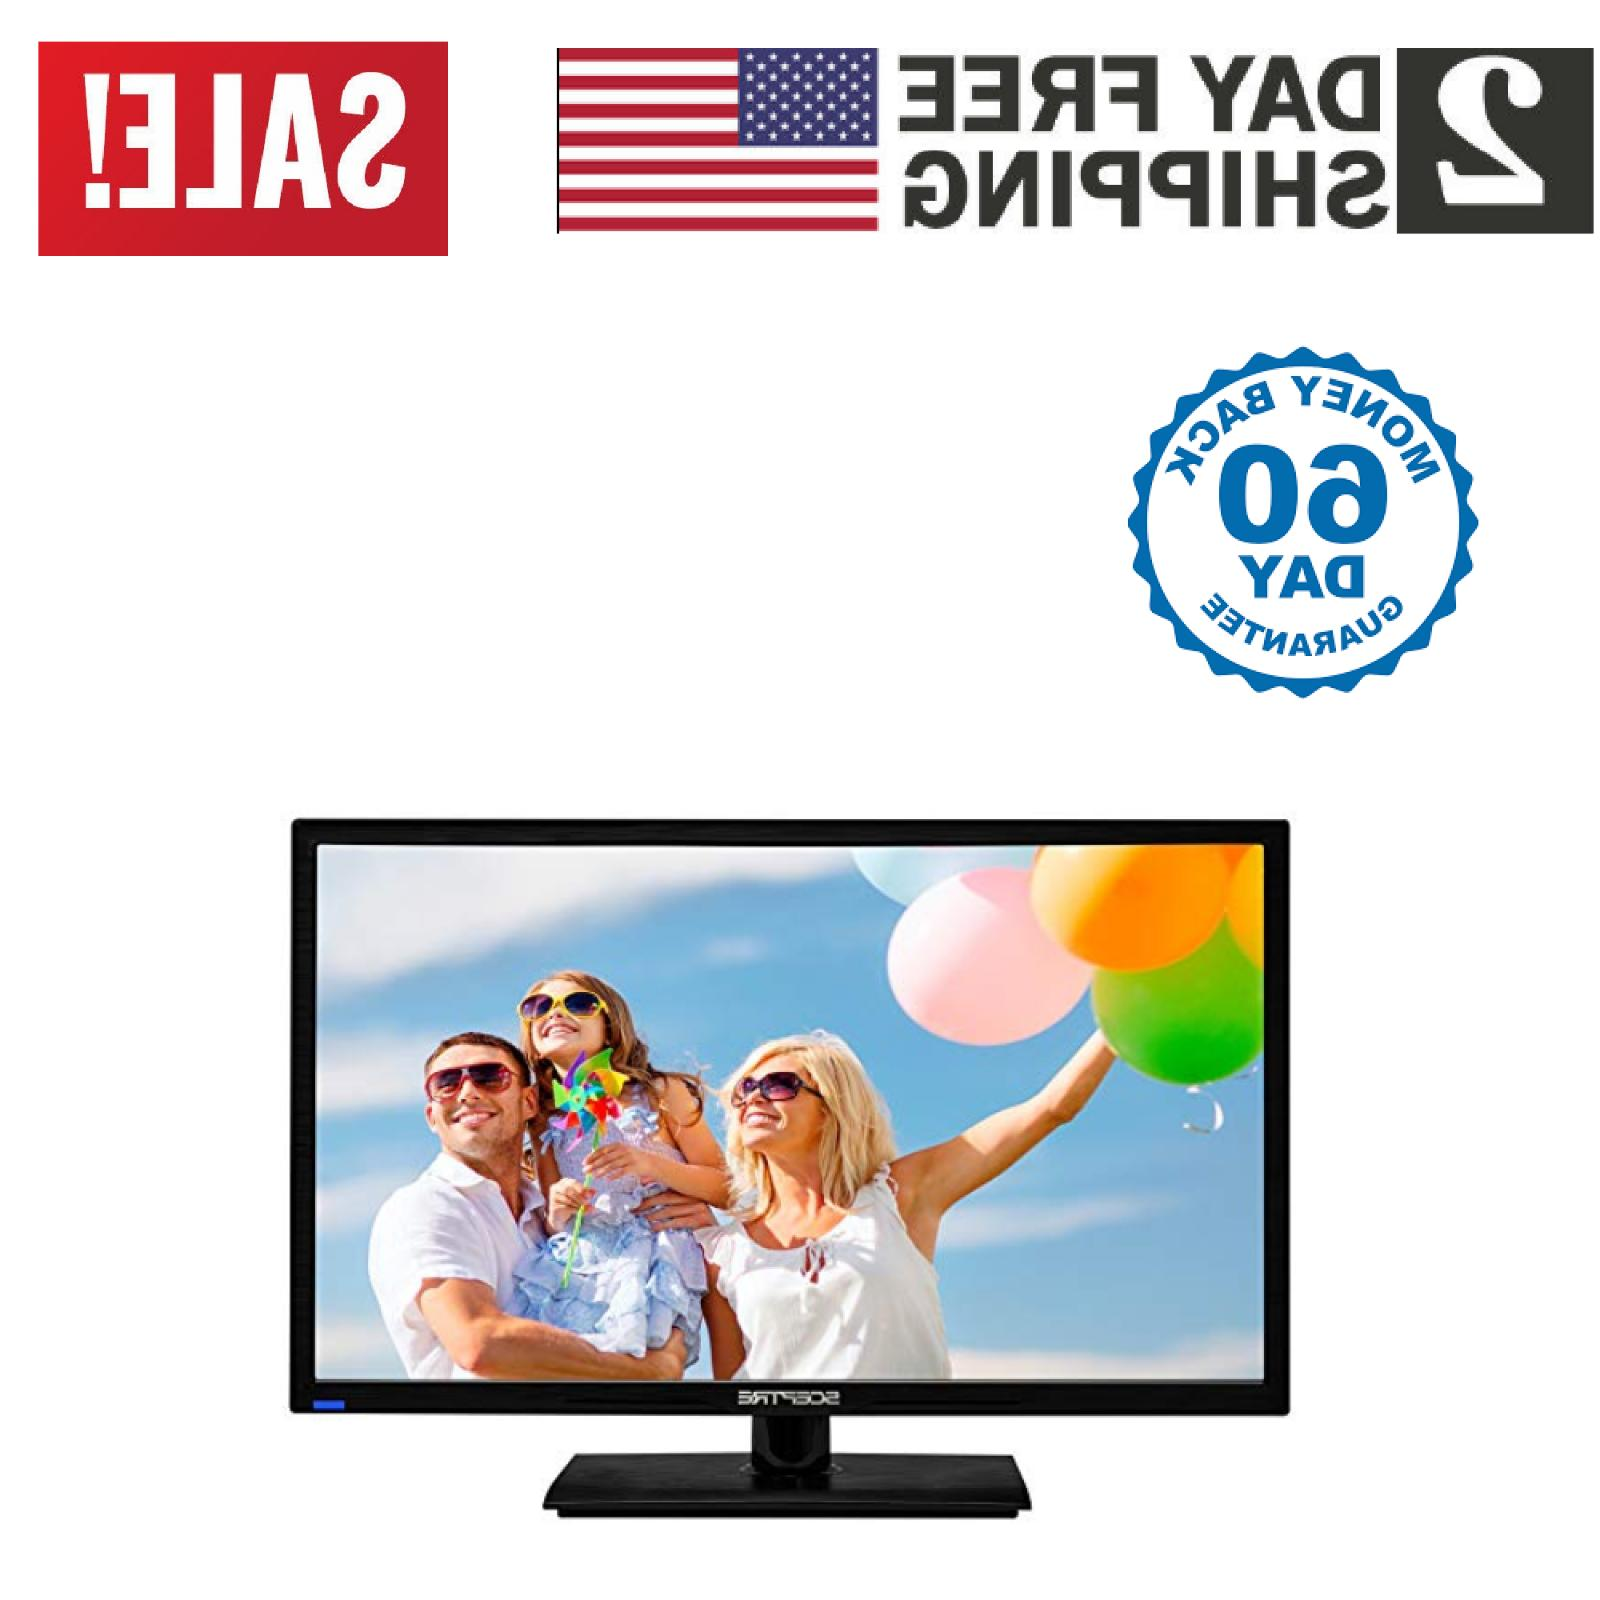 24 inch led full hd monitor television